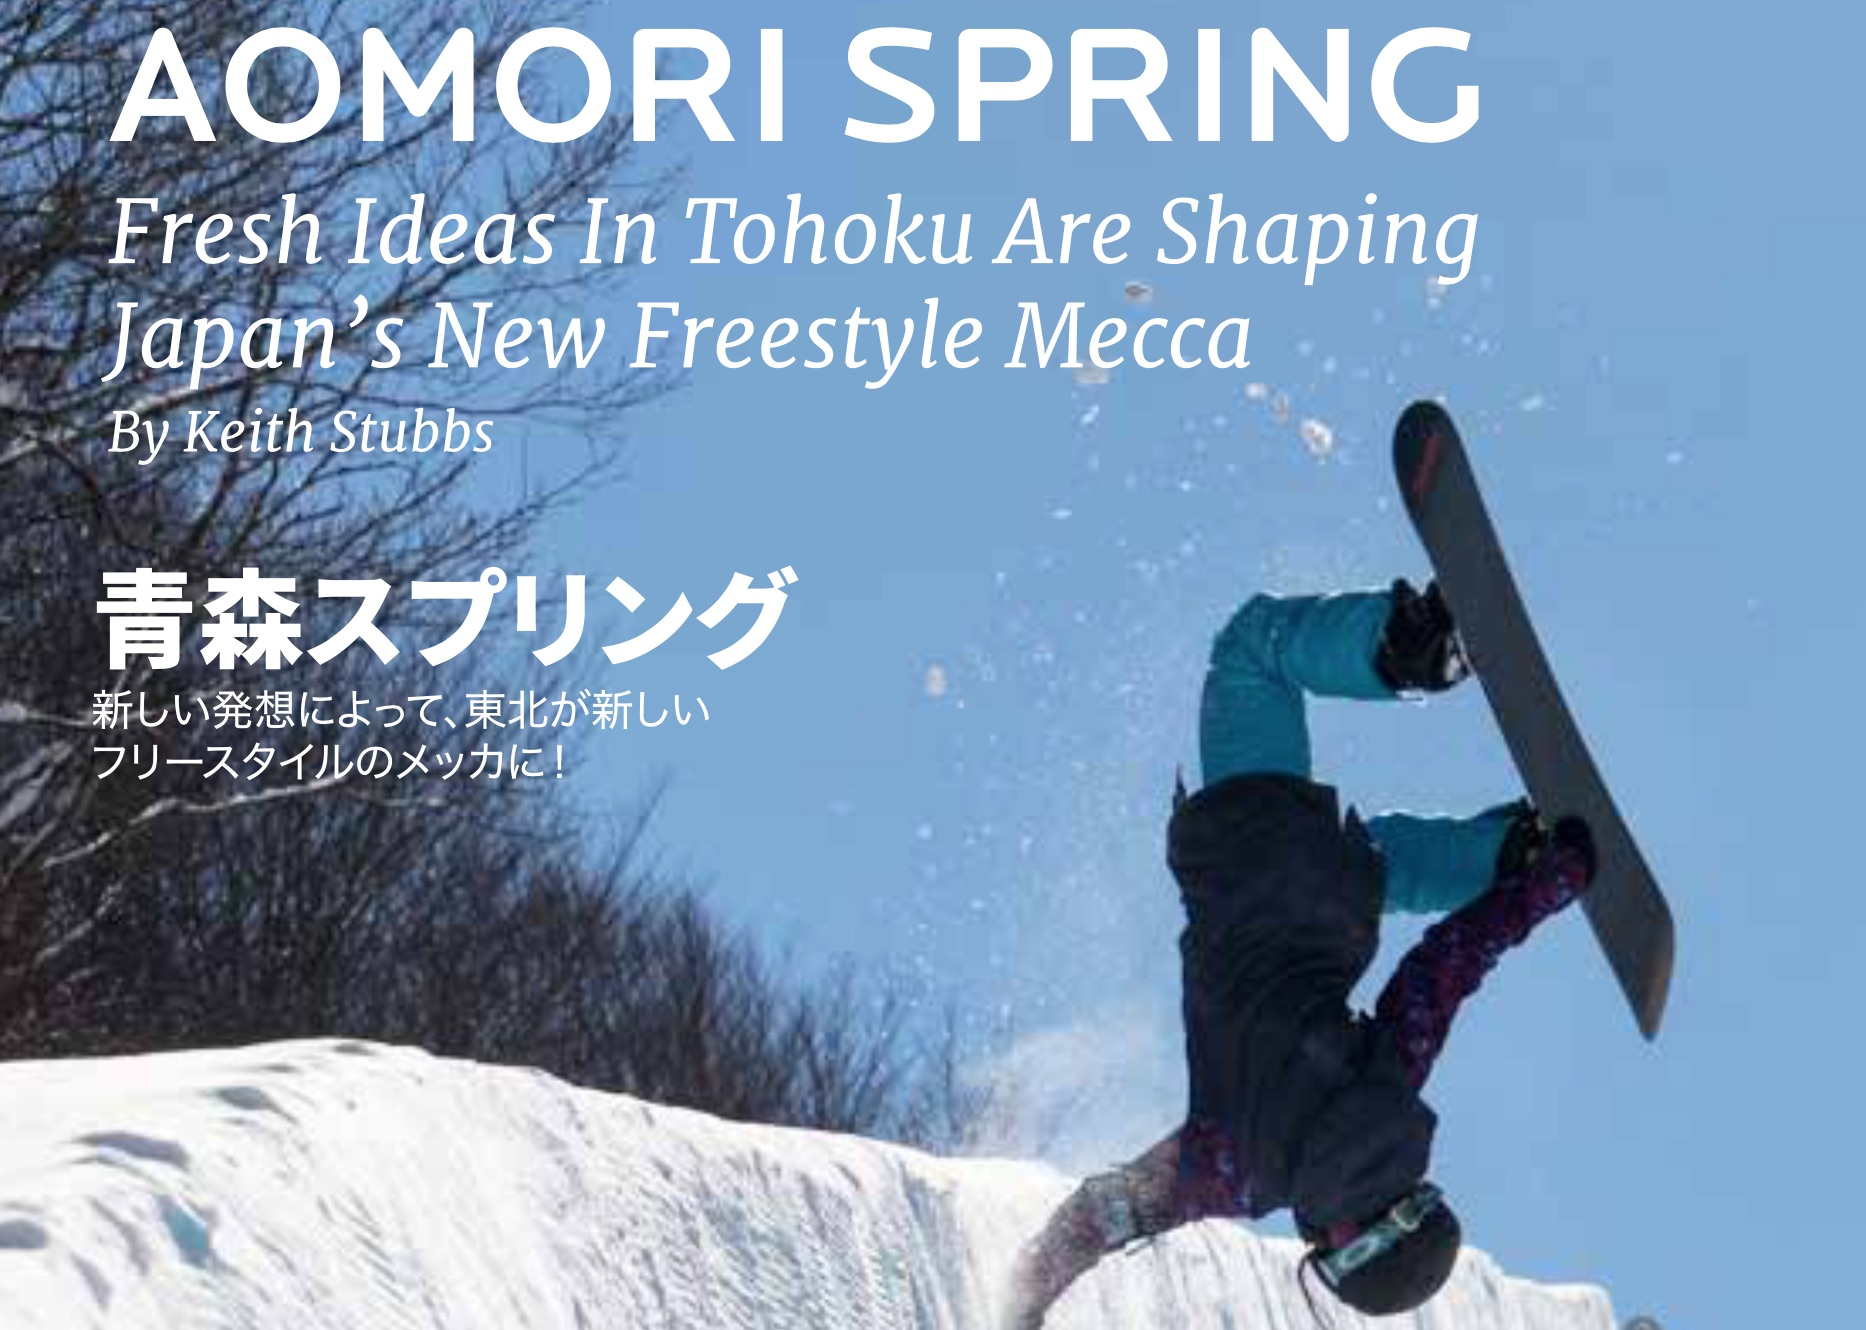 Outdoor Japan Article on Aomori Spring